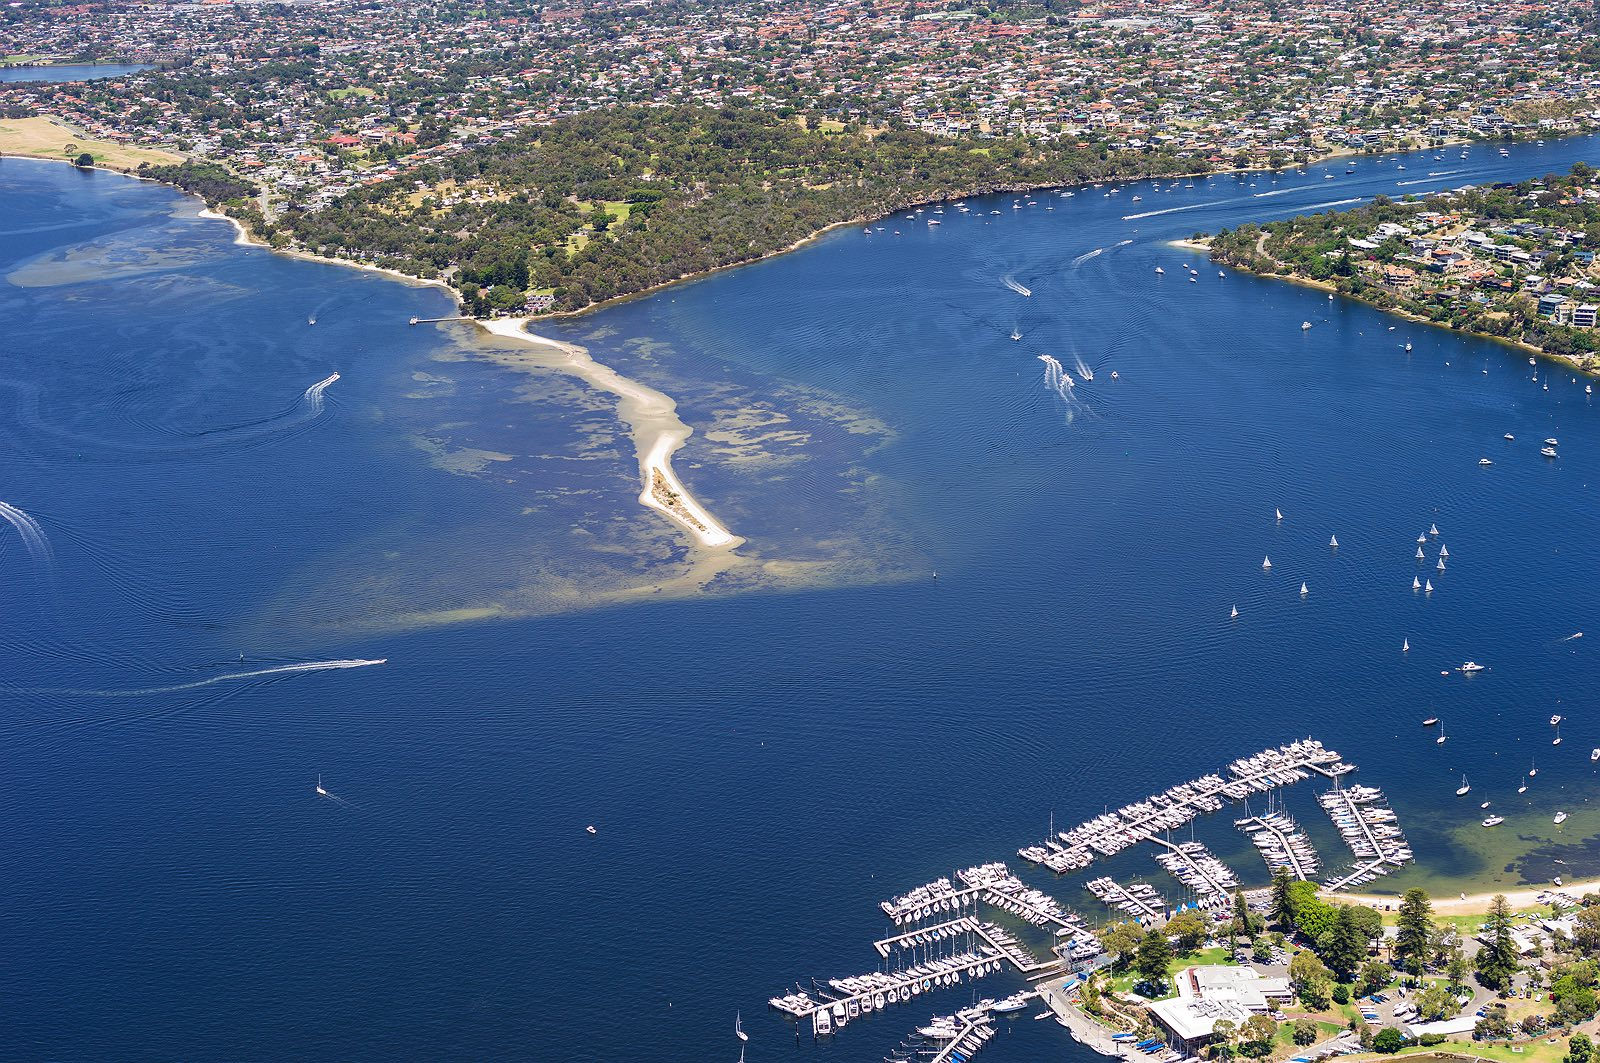 point-walter-swan-river-aerial-perth